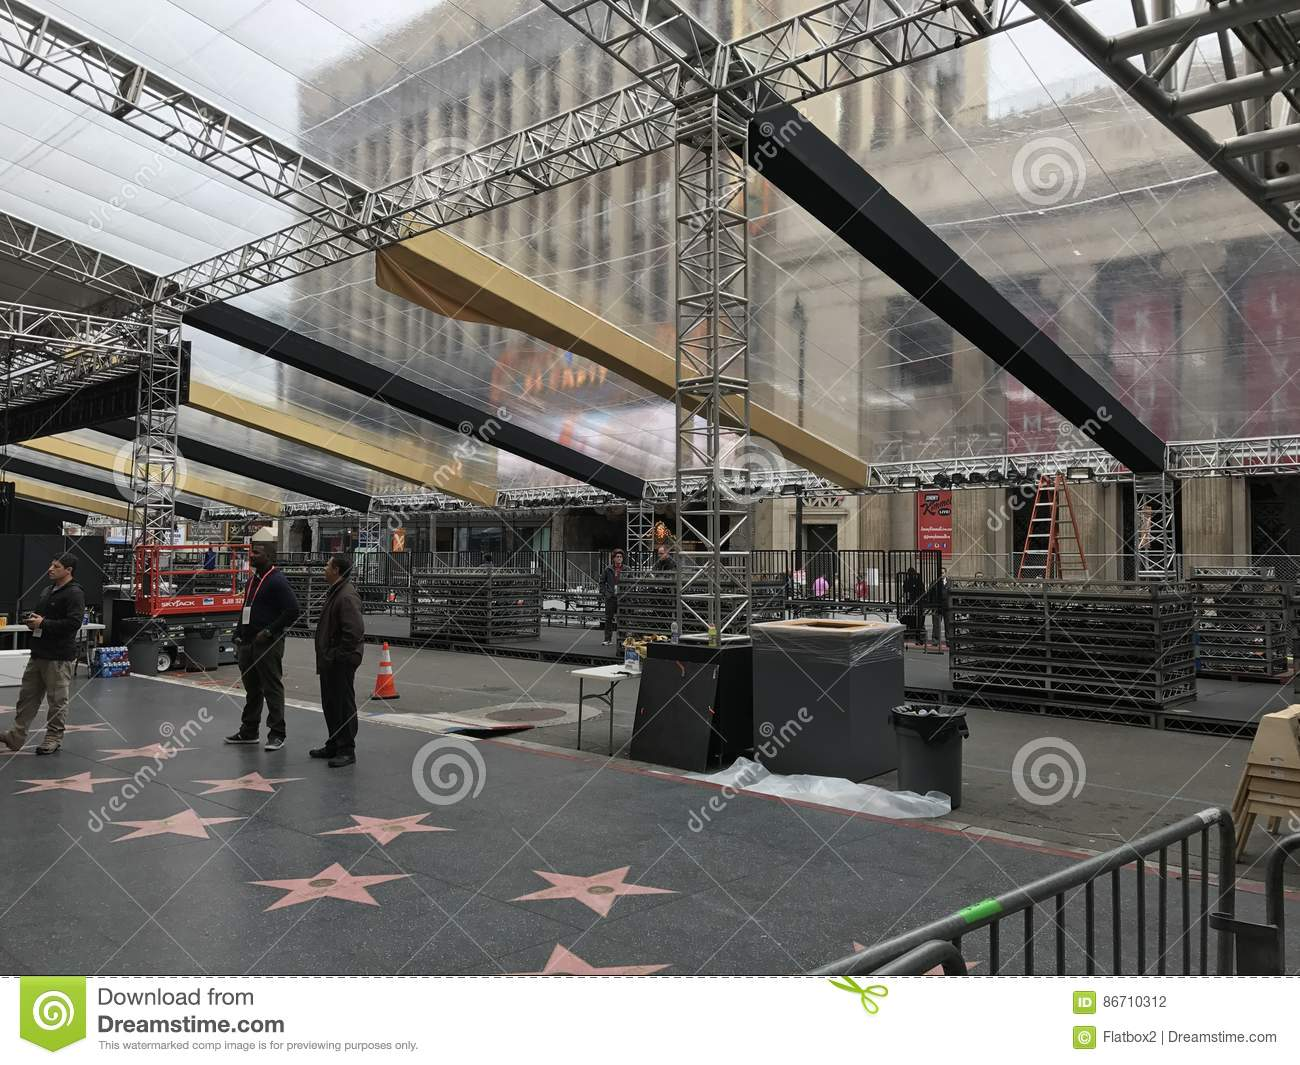 LOS ANGELES - FEB 21: Oscar preparations at the Dolby Theater, 2017 in Hollywood, Los Angeles, California